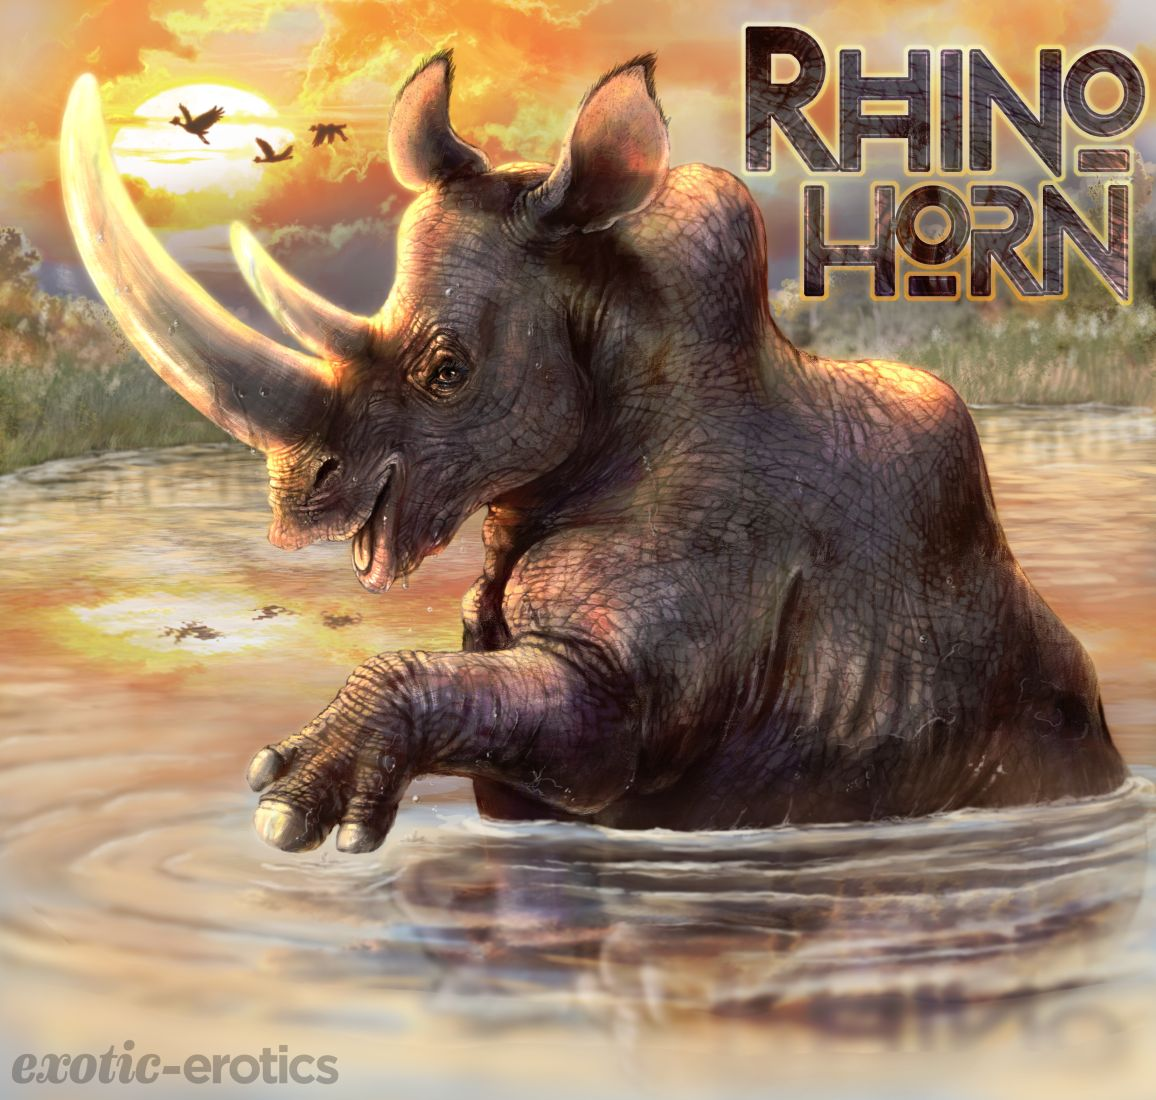 https://www.exotic-erotics.com/store/images/products/Rhino%20Horn%20Small_1.jpg